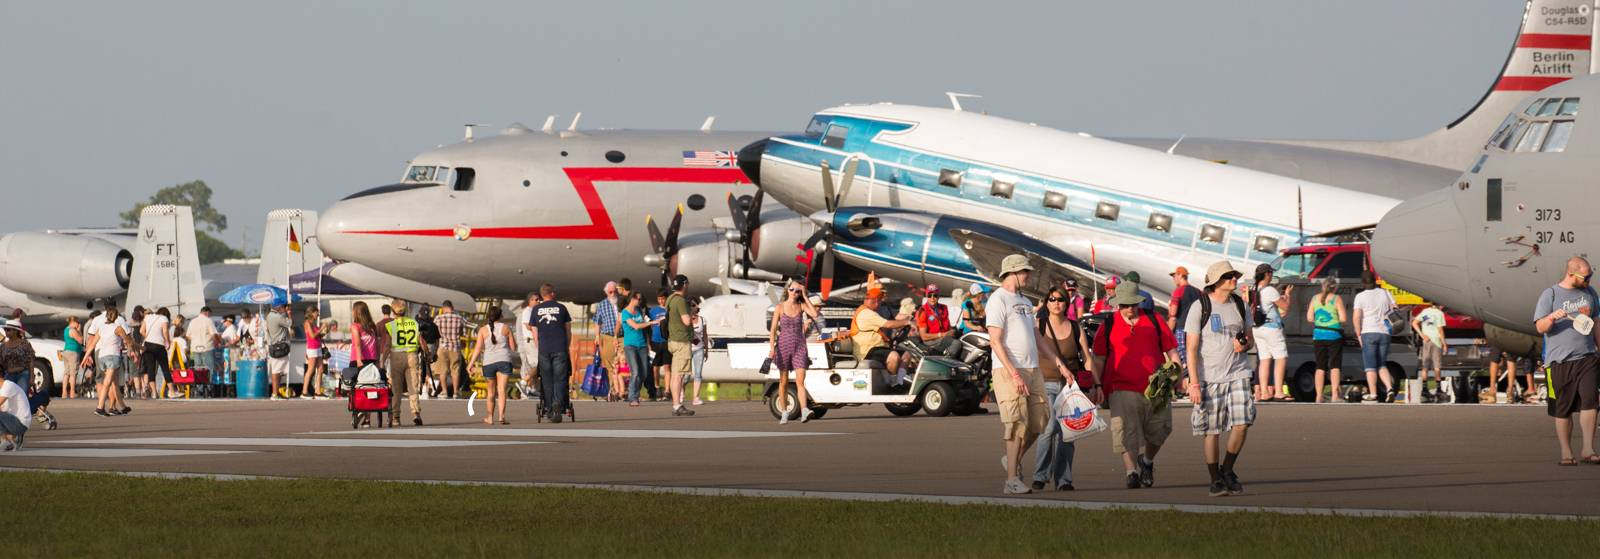 SUN 'n FUN Int'l Fly-In Expo - Glasair Aircraft Owners ...